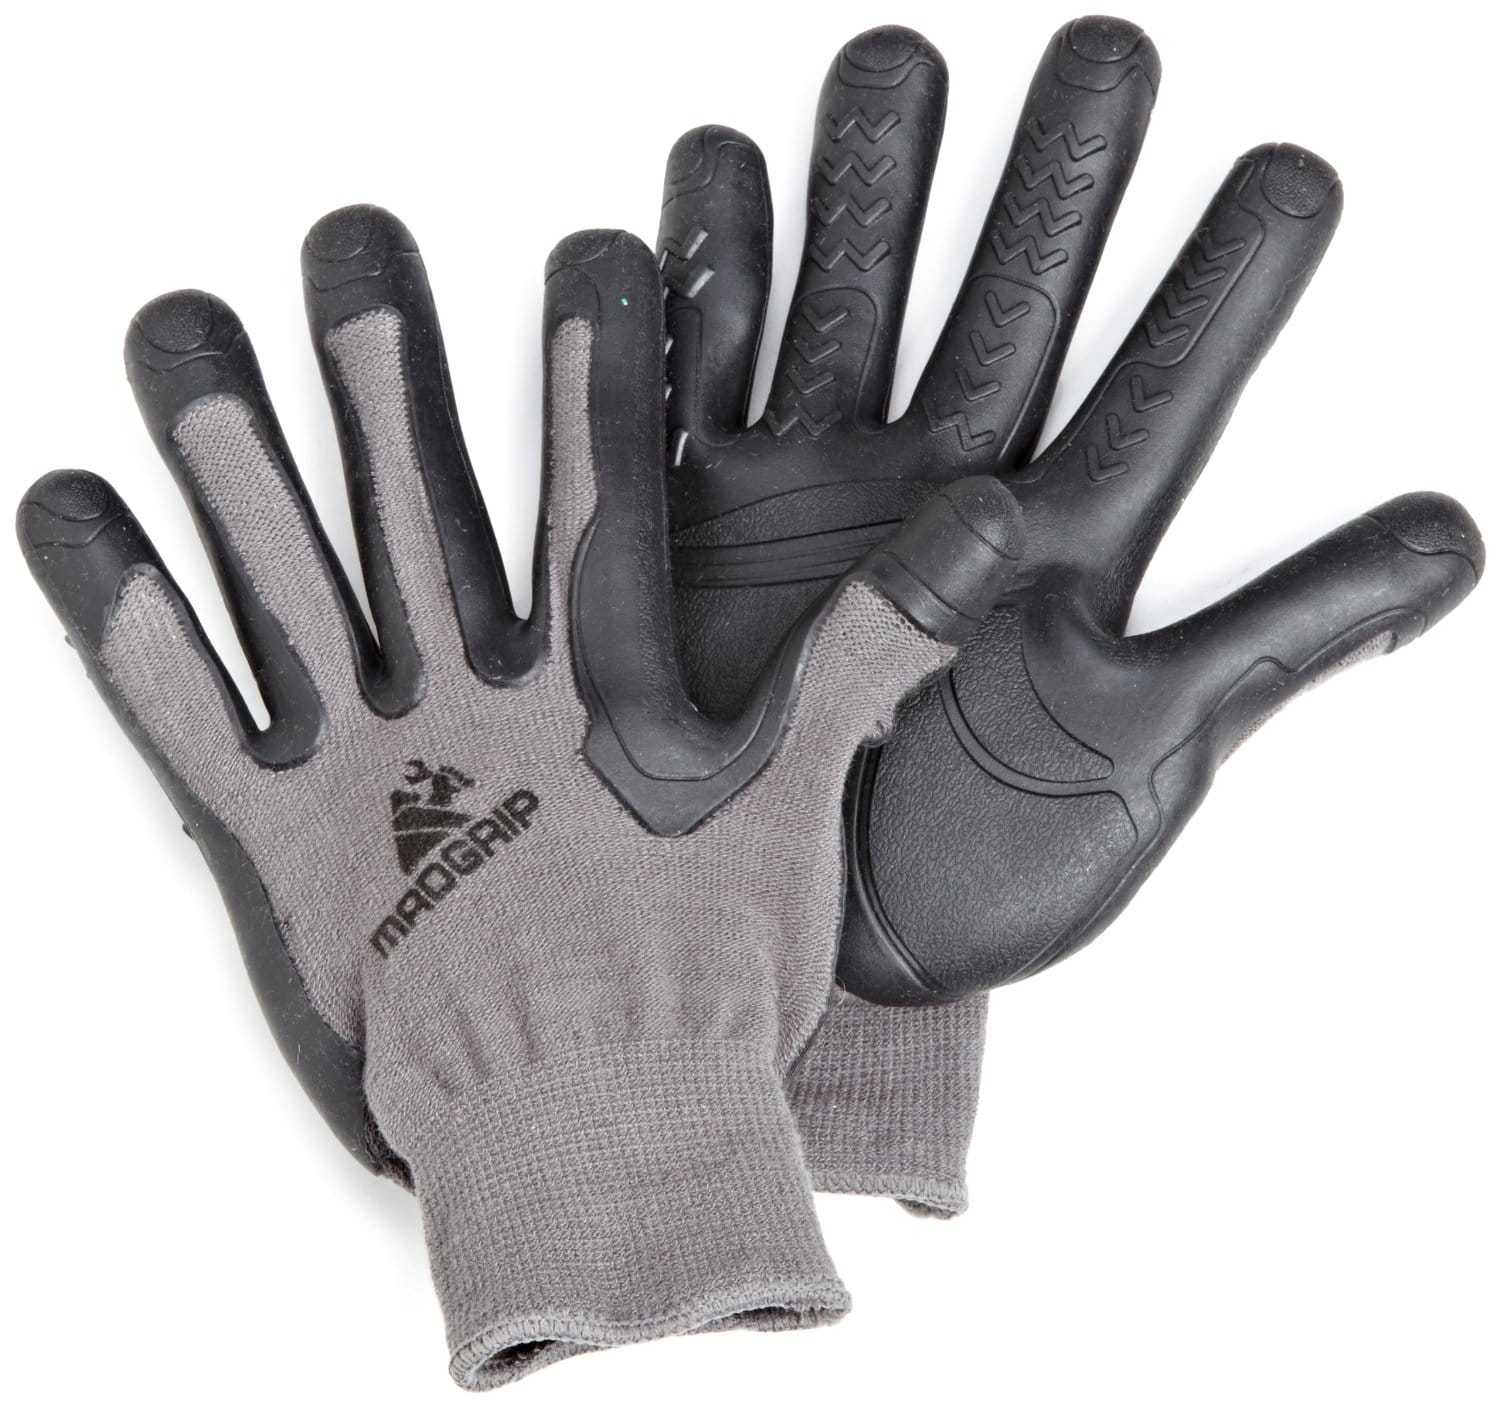 mad grip gloves for parkour